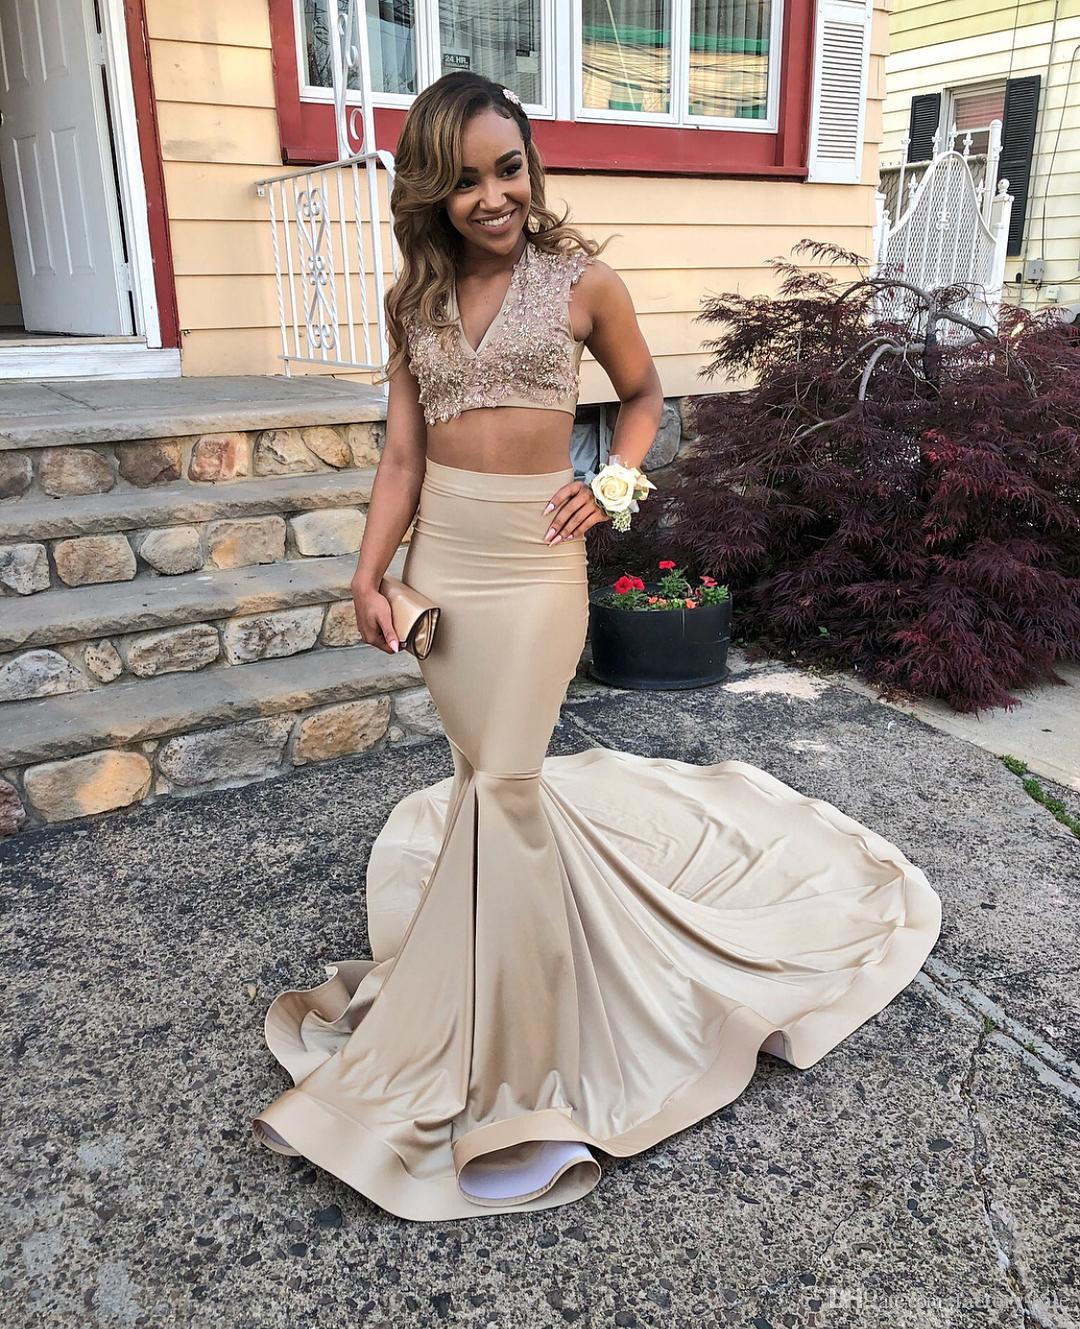 db74723962d Champagne 2019 Two Piece Mermaid Prom Dresses Sexy V Neck Lace Applique  Sequined Beads Backless Formal Eveing Gowns Vestidos De Fiesta Prom Dresses  Shops ...